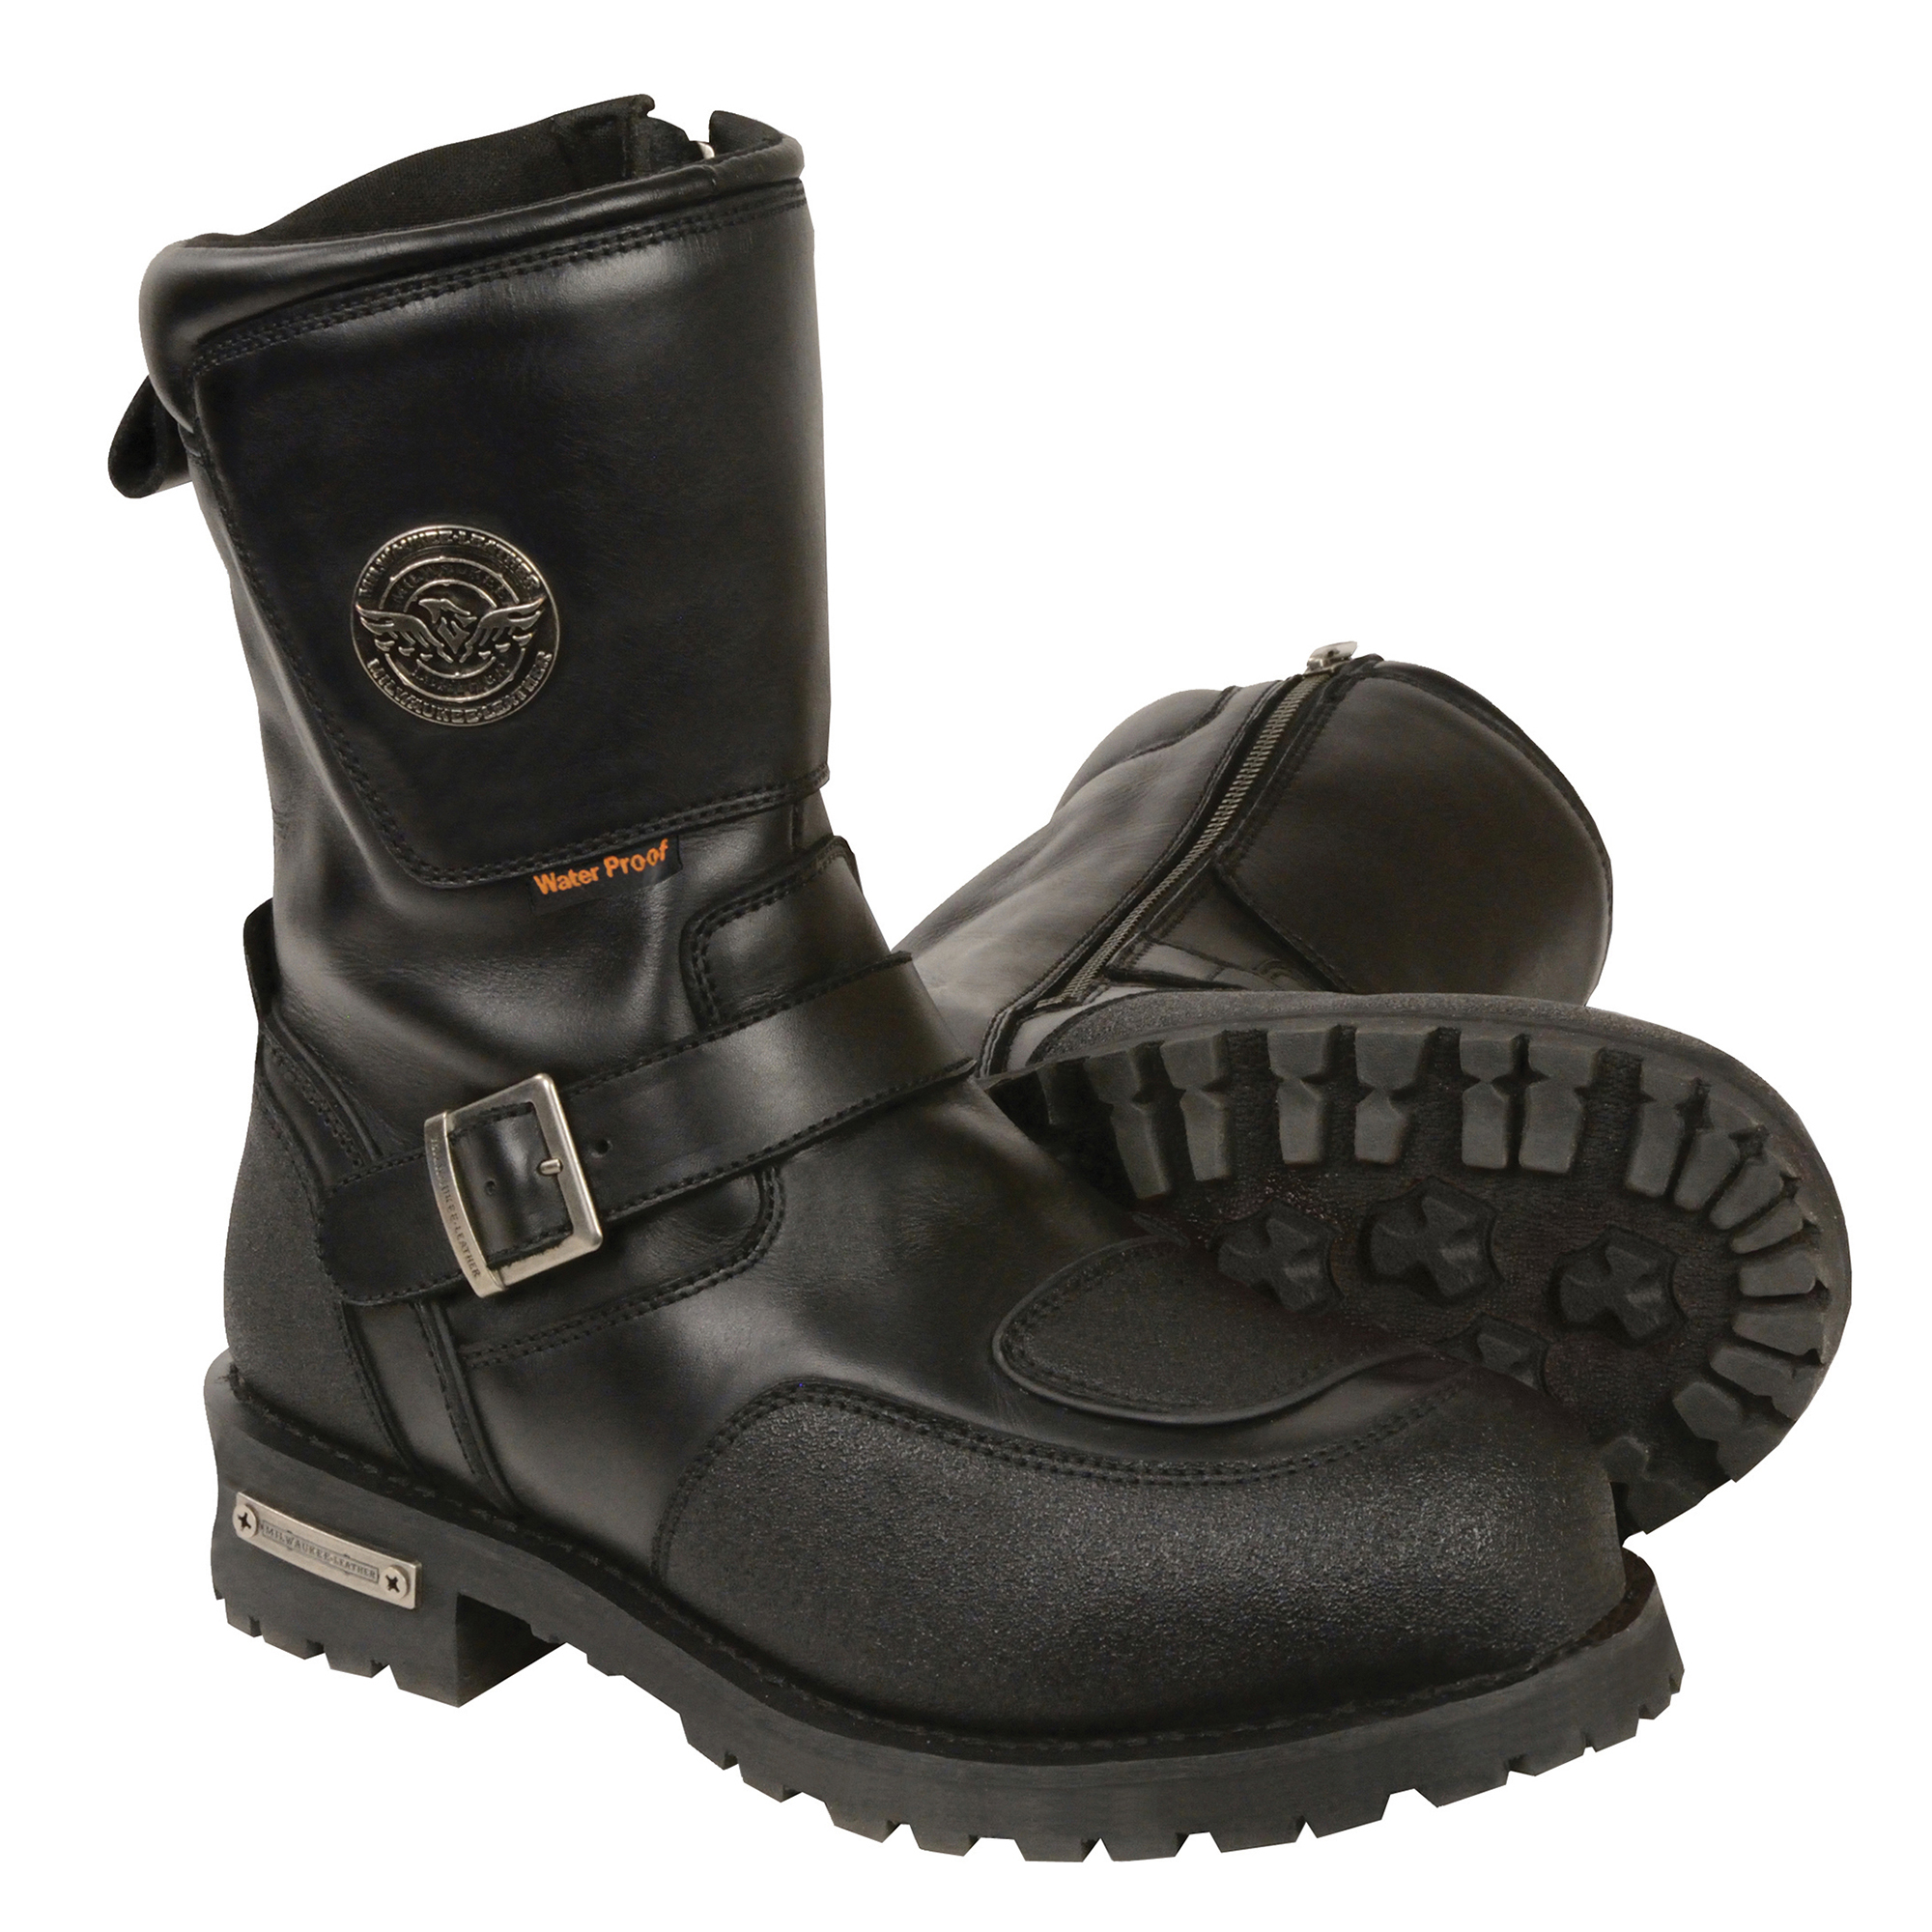 "Men's 9"" Waterproof Boot w/ Reflective Piping & Gear Shift Protection"